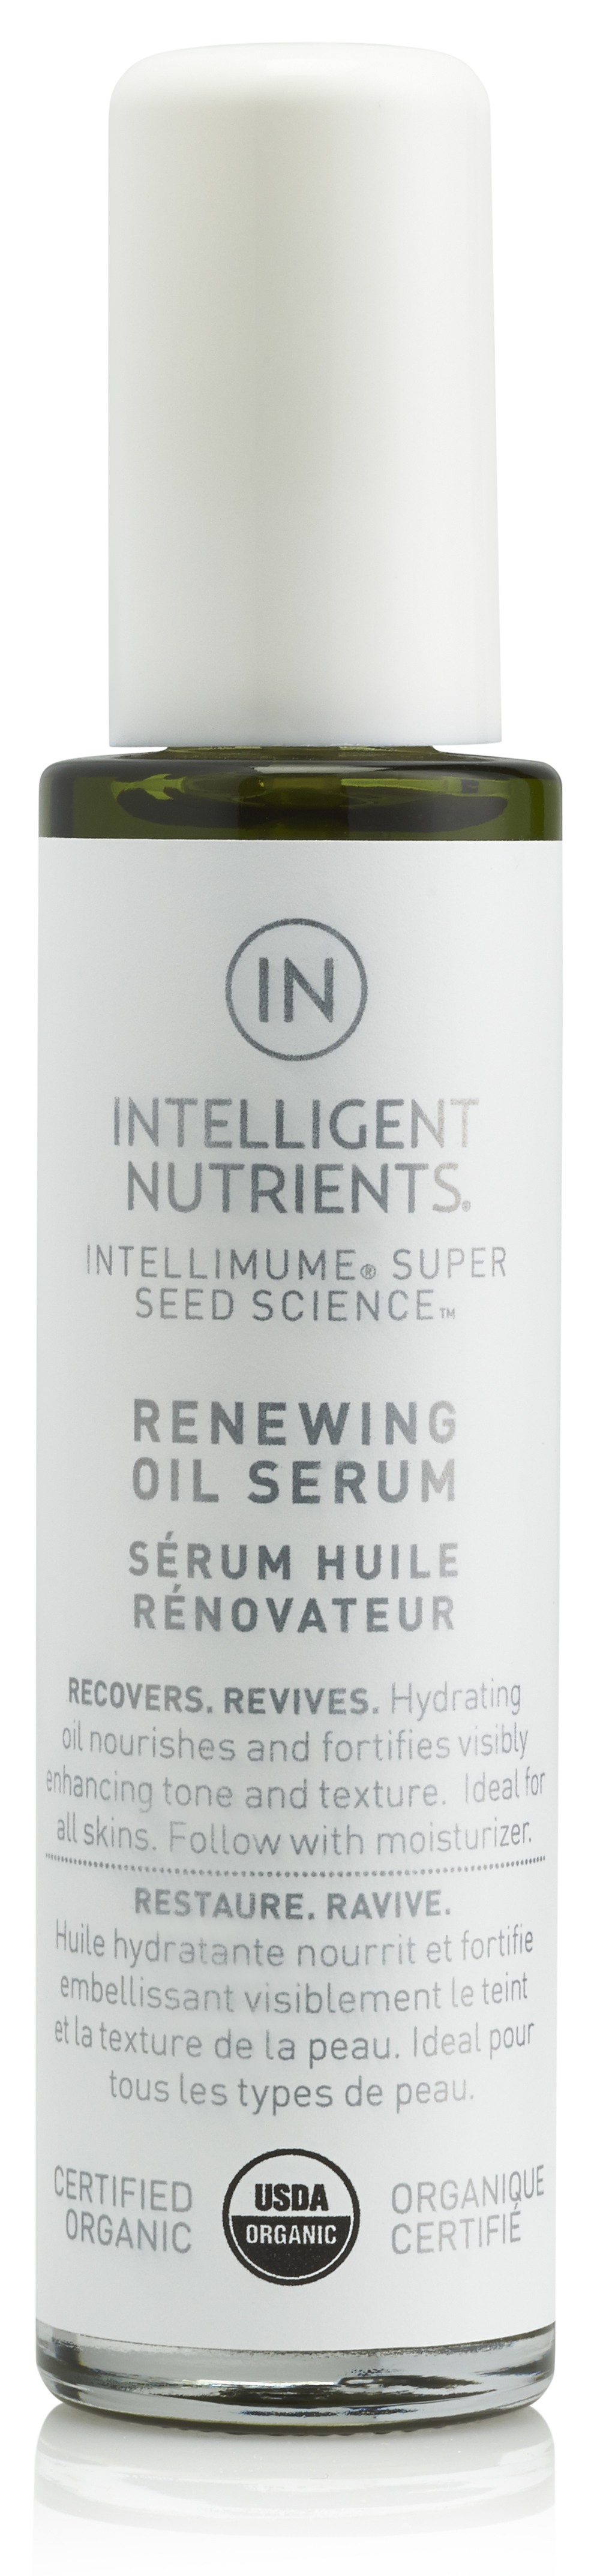 Renewing Oil Serum (DKK530/50ml)